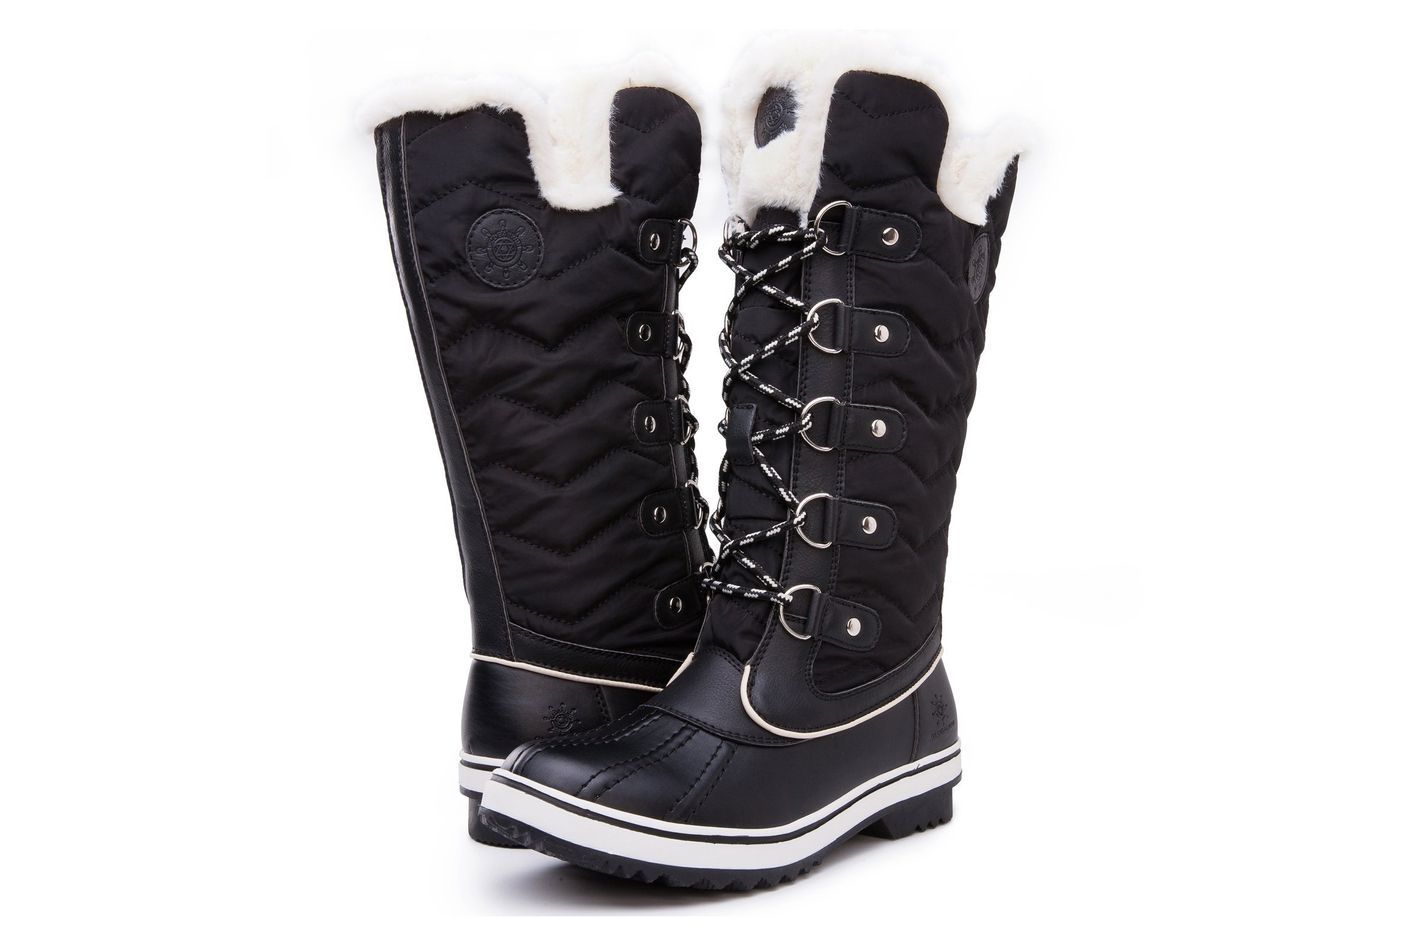 5366e79f6d68 Kingshow Women s Global Win Waterproof Winter Boots